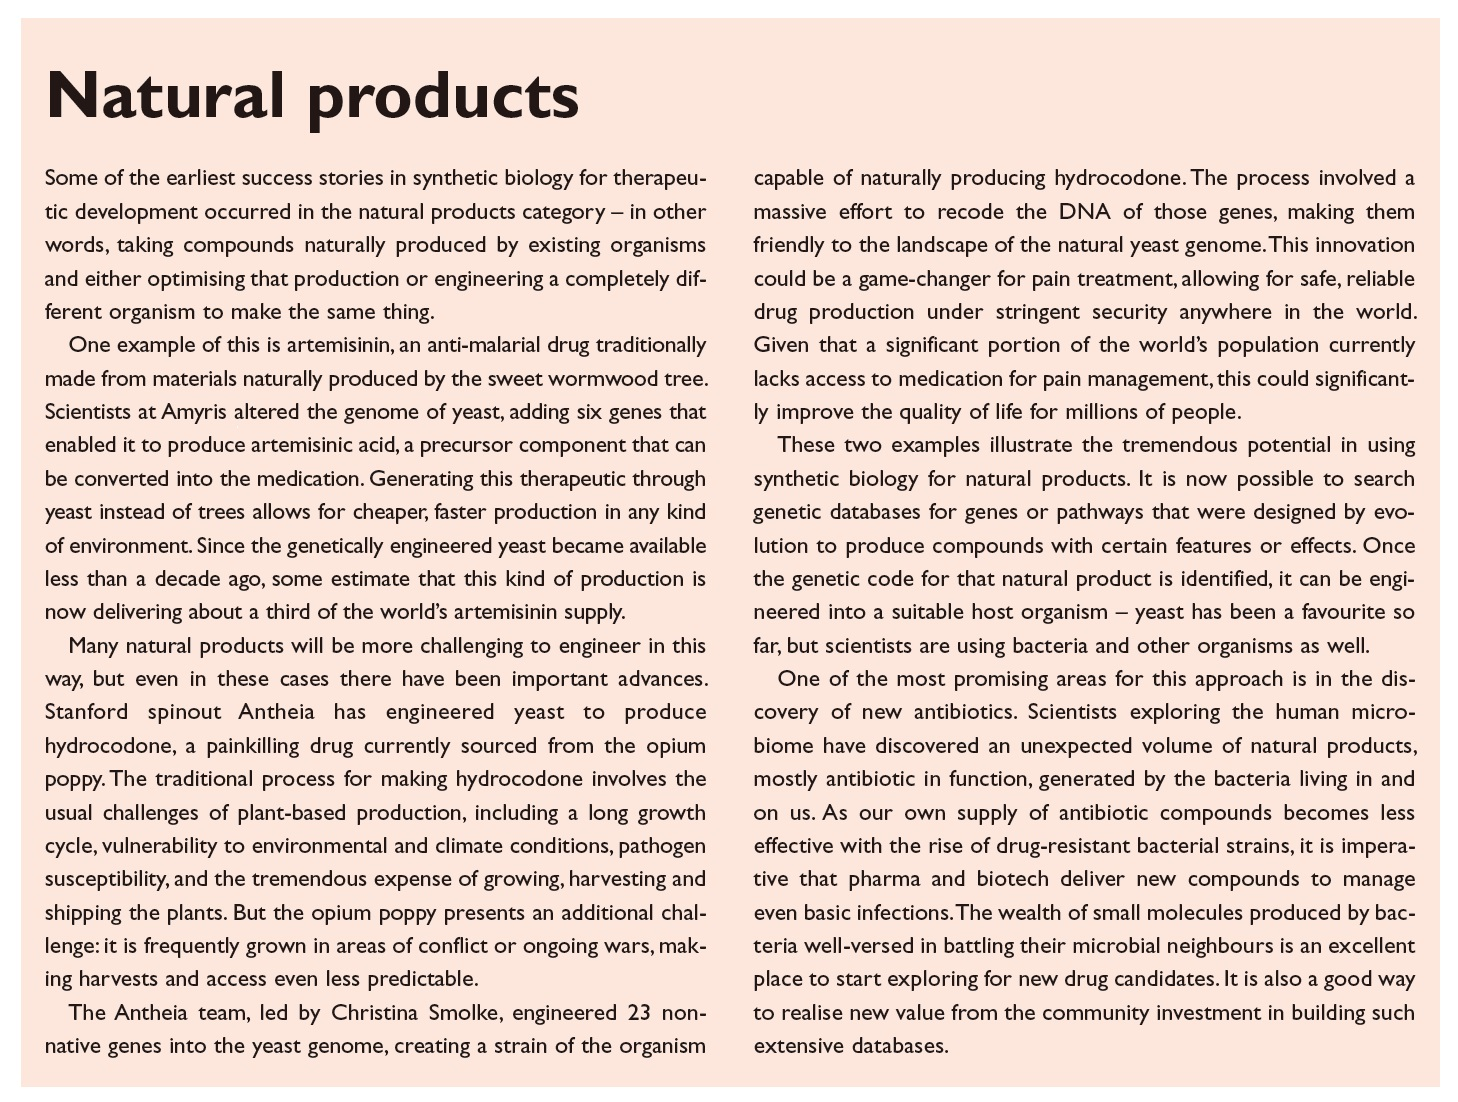 Figure 5 Natural products excerpt, sythetic biology success stories